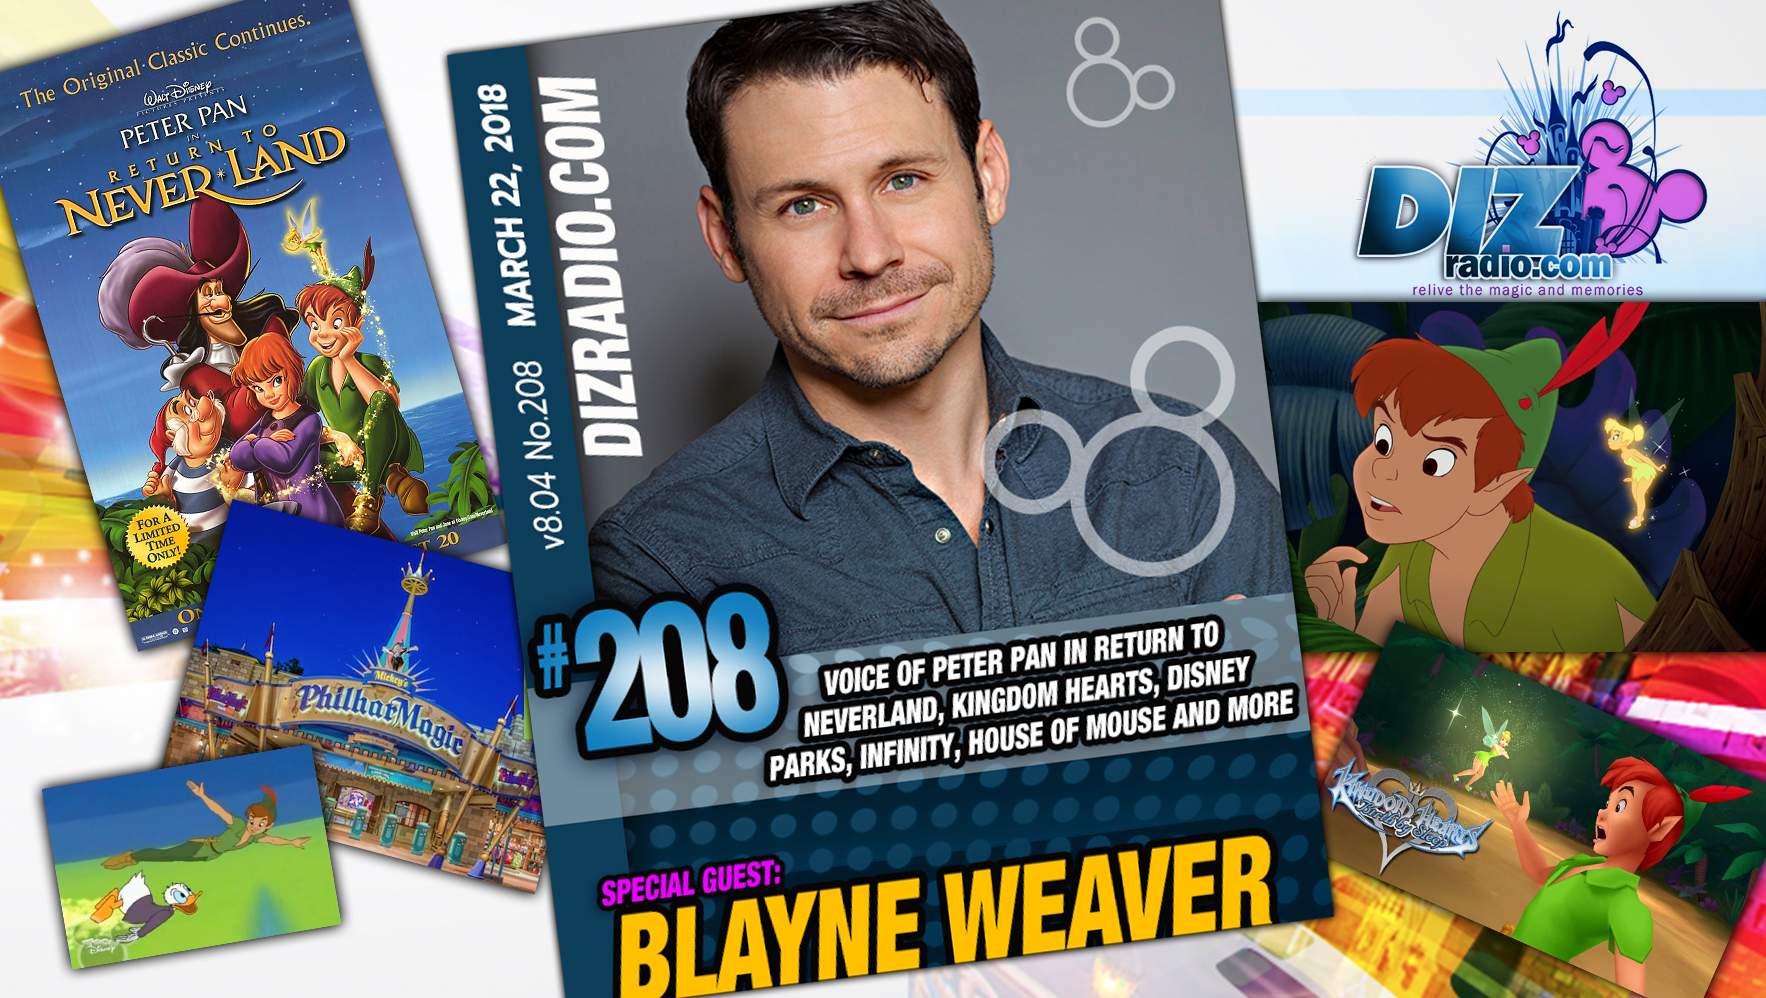 DisneyBlu's DizRadio Disney on Demand Show #208 w/ Special Guest BLAYNE WEAVER (Voice of Peter Pan in Return to Neverland, Kingdom Hearts, The Disney Parks, and more)